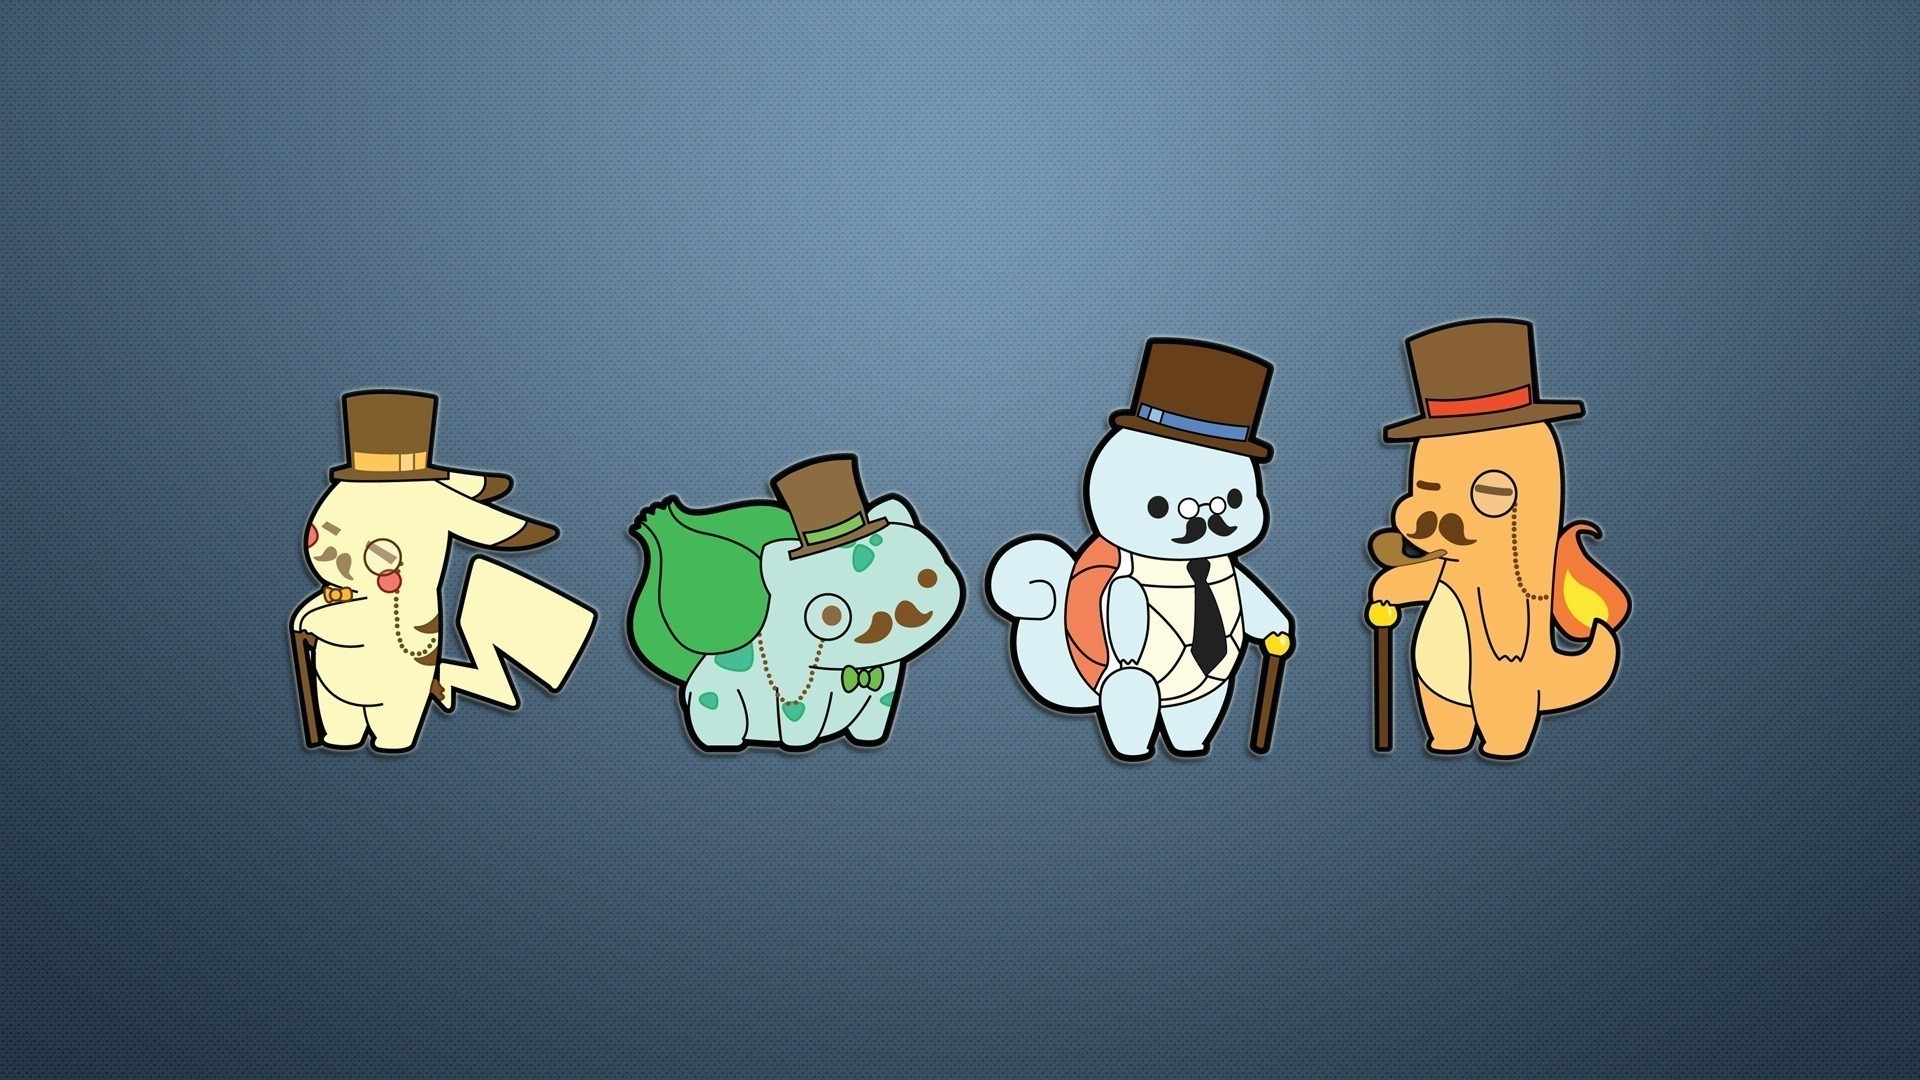 1920x1080 1920x1200 Cute Pokemon Wallpaper | Download Wallpapers